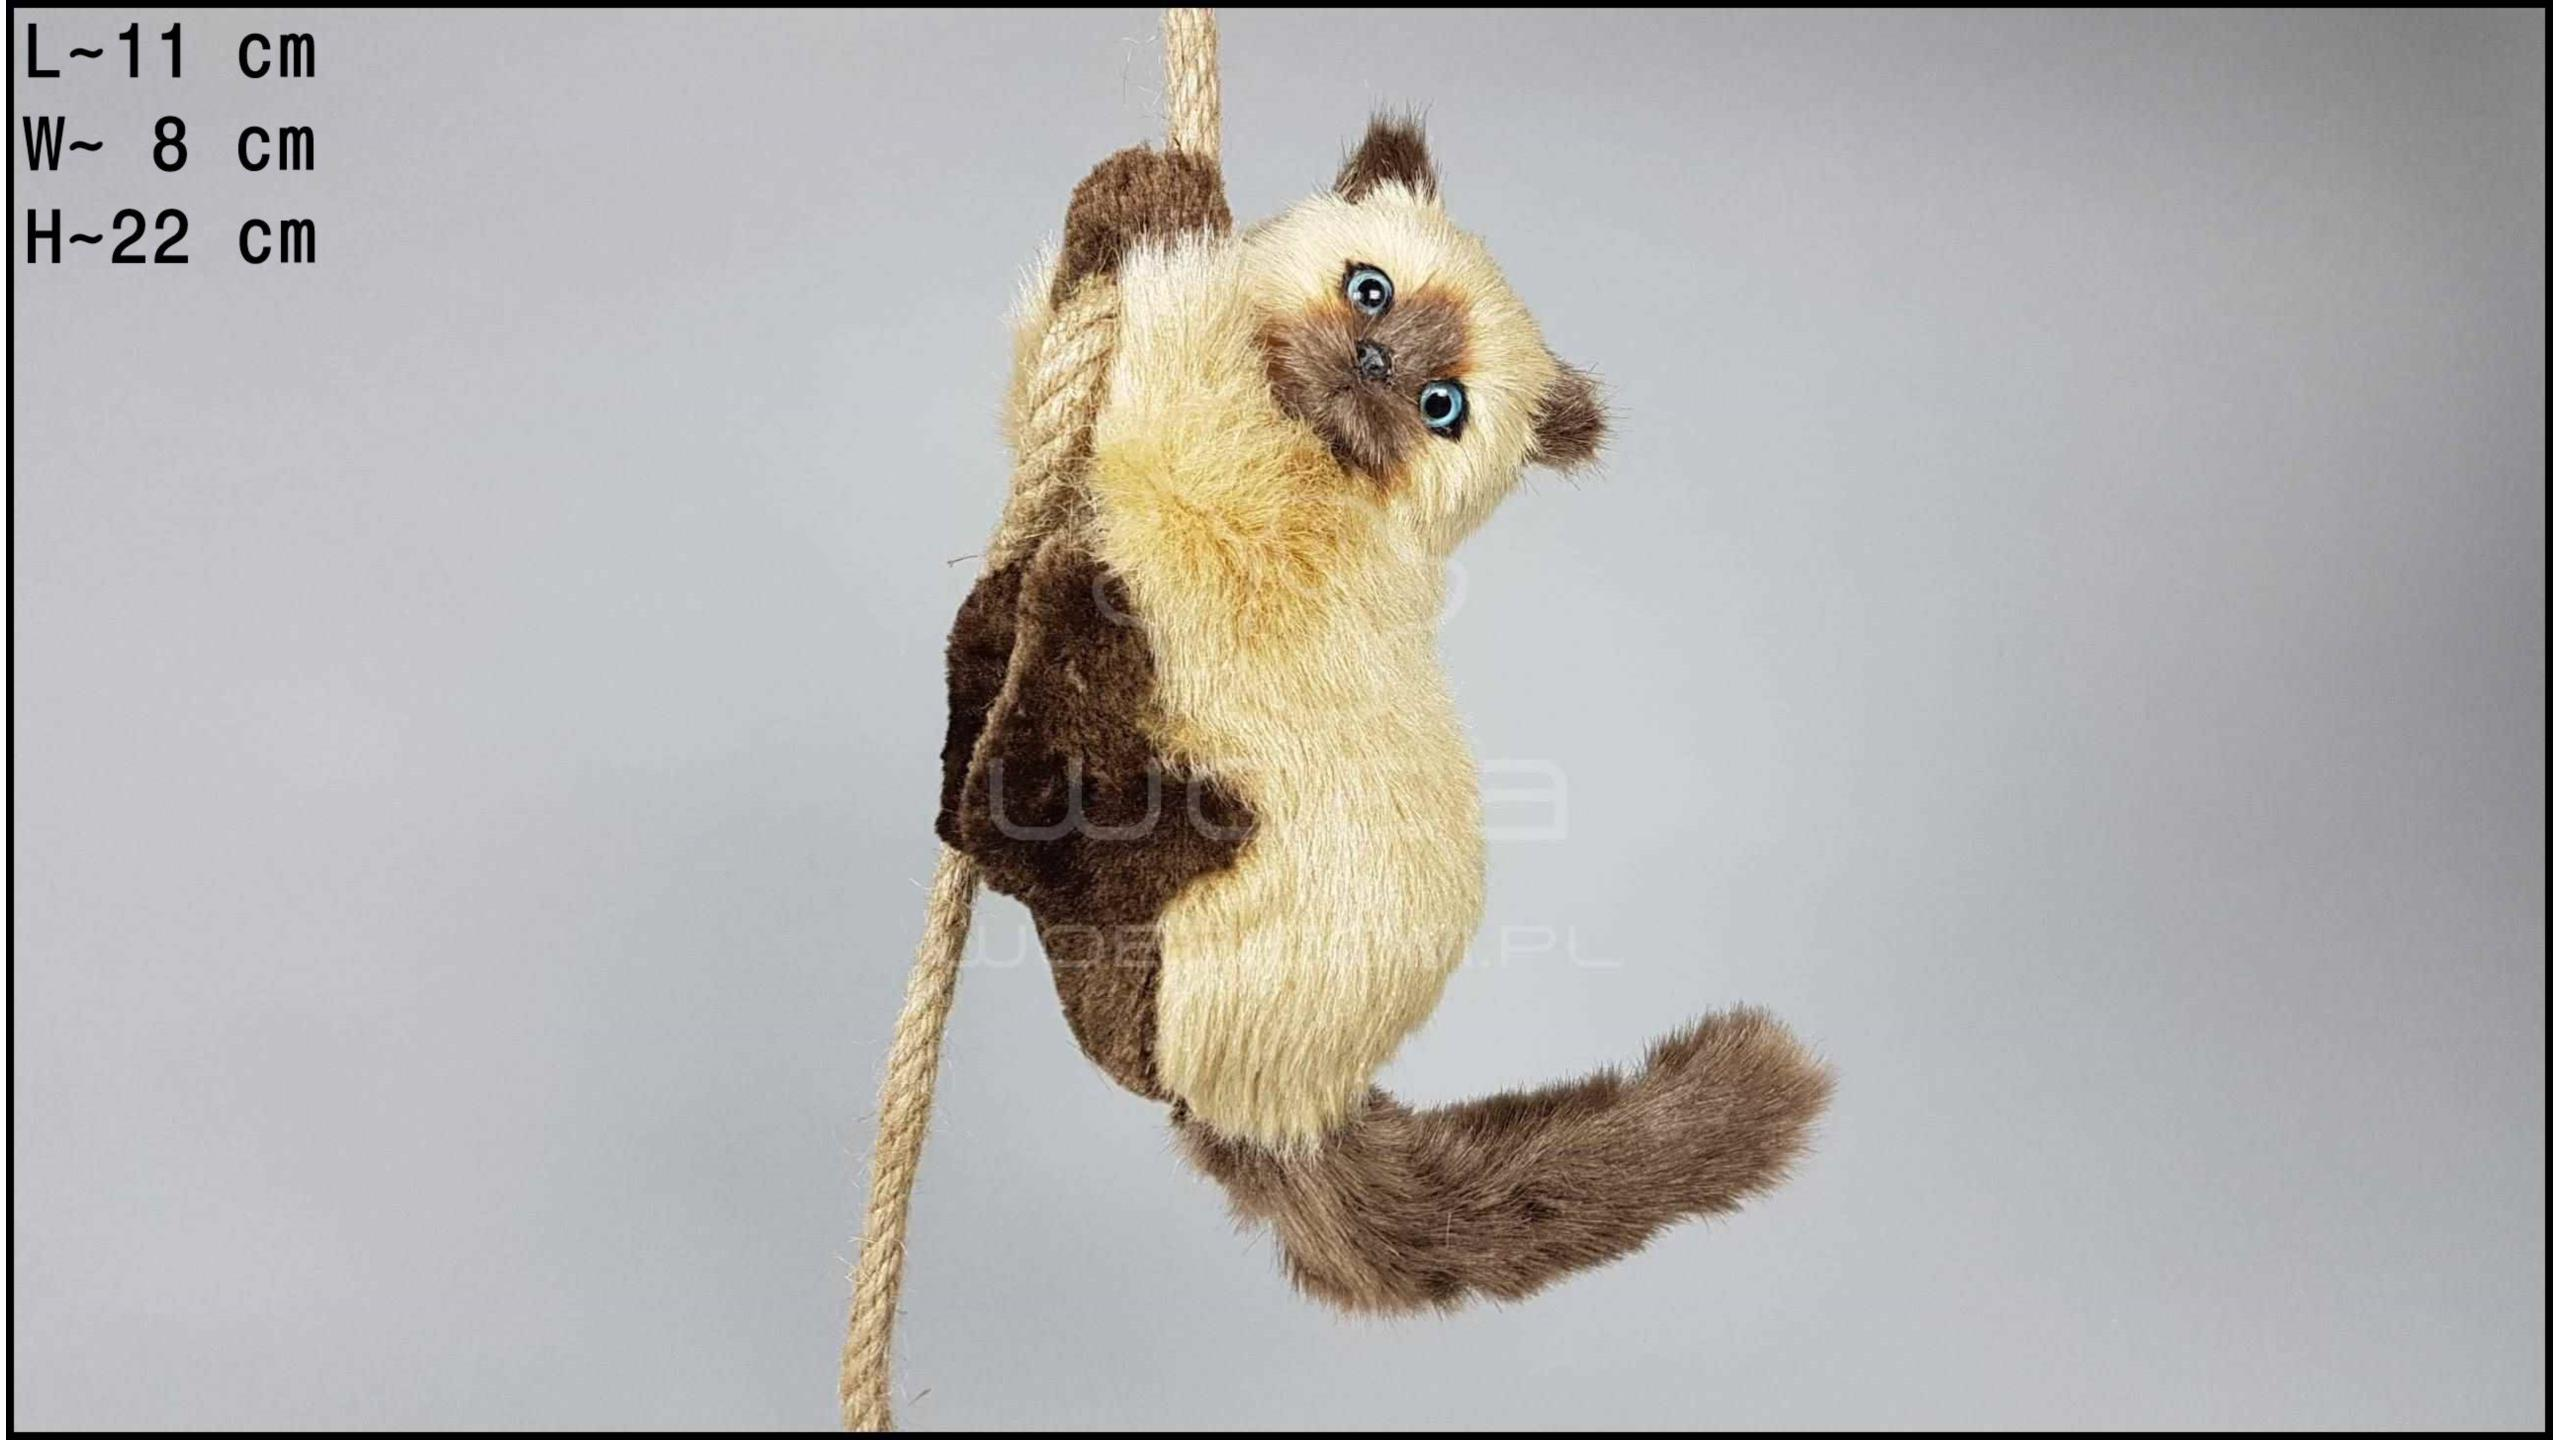 Cat climbing a rope - Cream-coloured